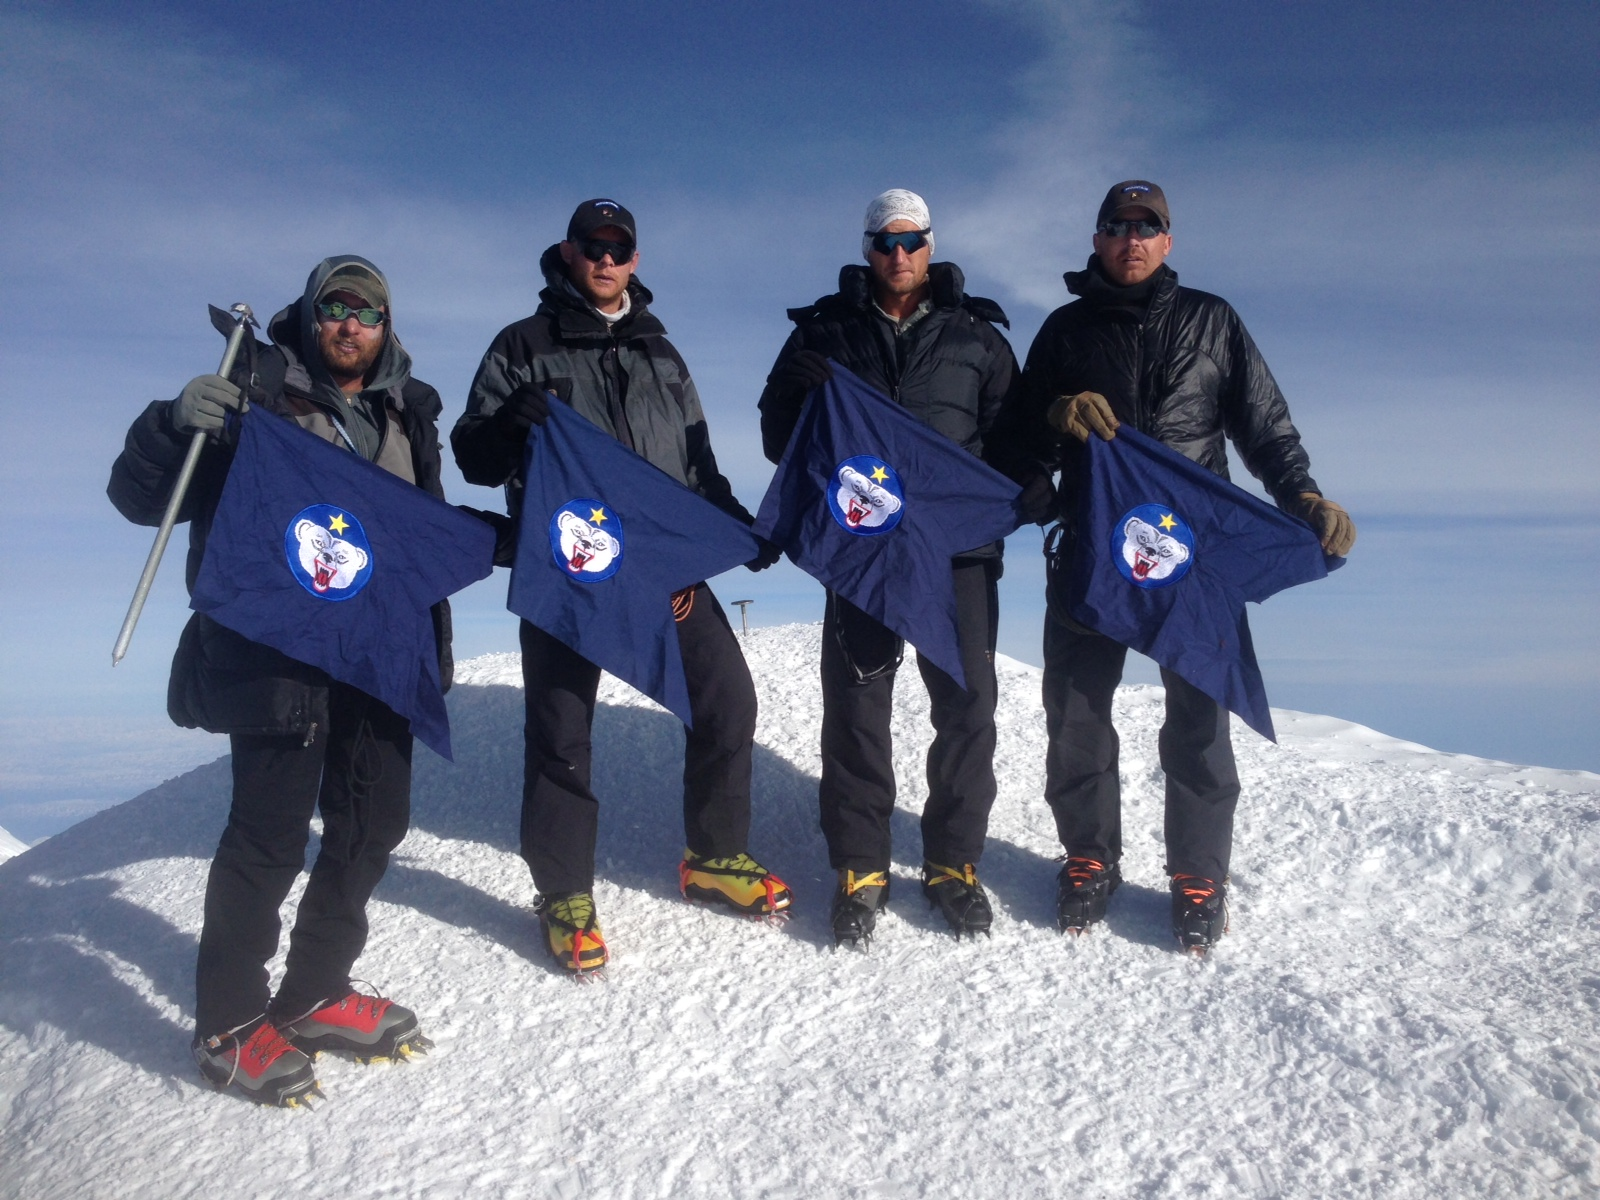 Members of a team of U. S. Army Alaska Soldiers and a civilian adviser pose for a photo on the summit of Denali (then-Mt. McKinley), the highest peak in North America on June 1, 2013. (Creative Commons photo by U.S. Army Alaska (USARAK))